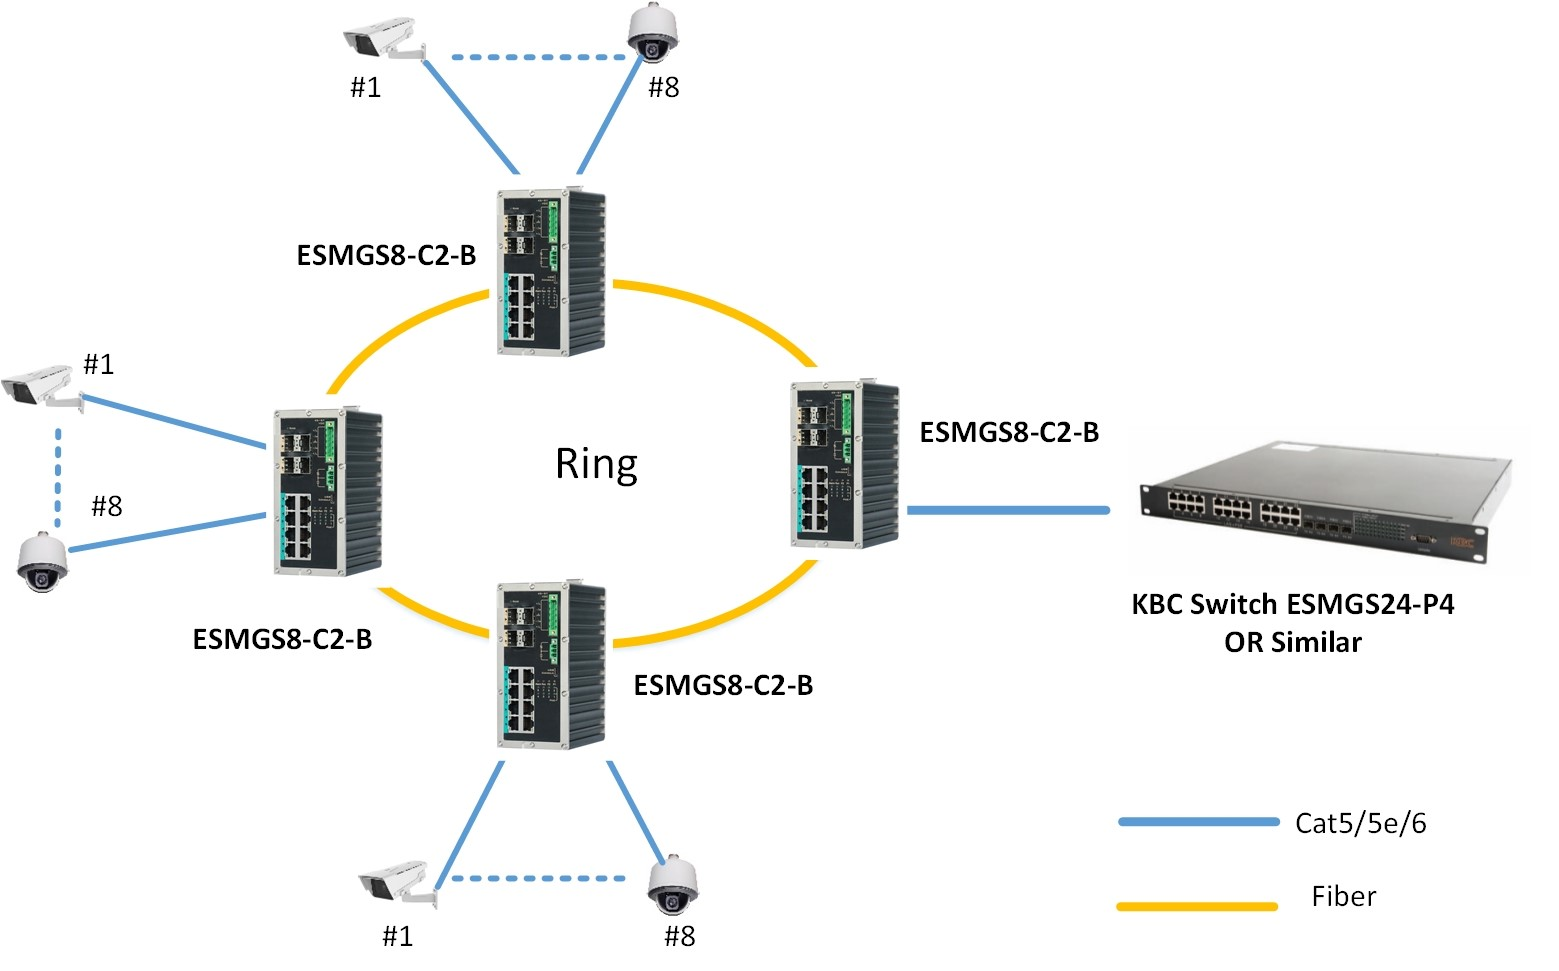 Typical System configuration for ESUGS8-P2-B